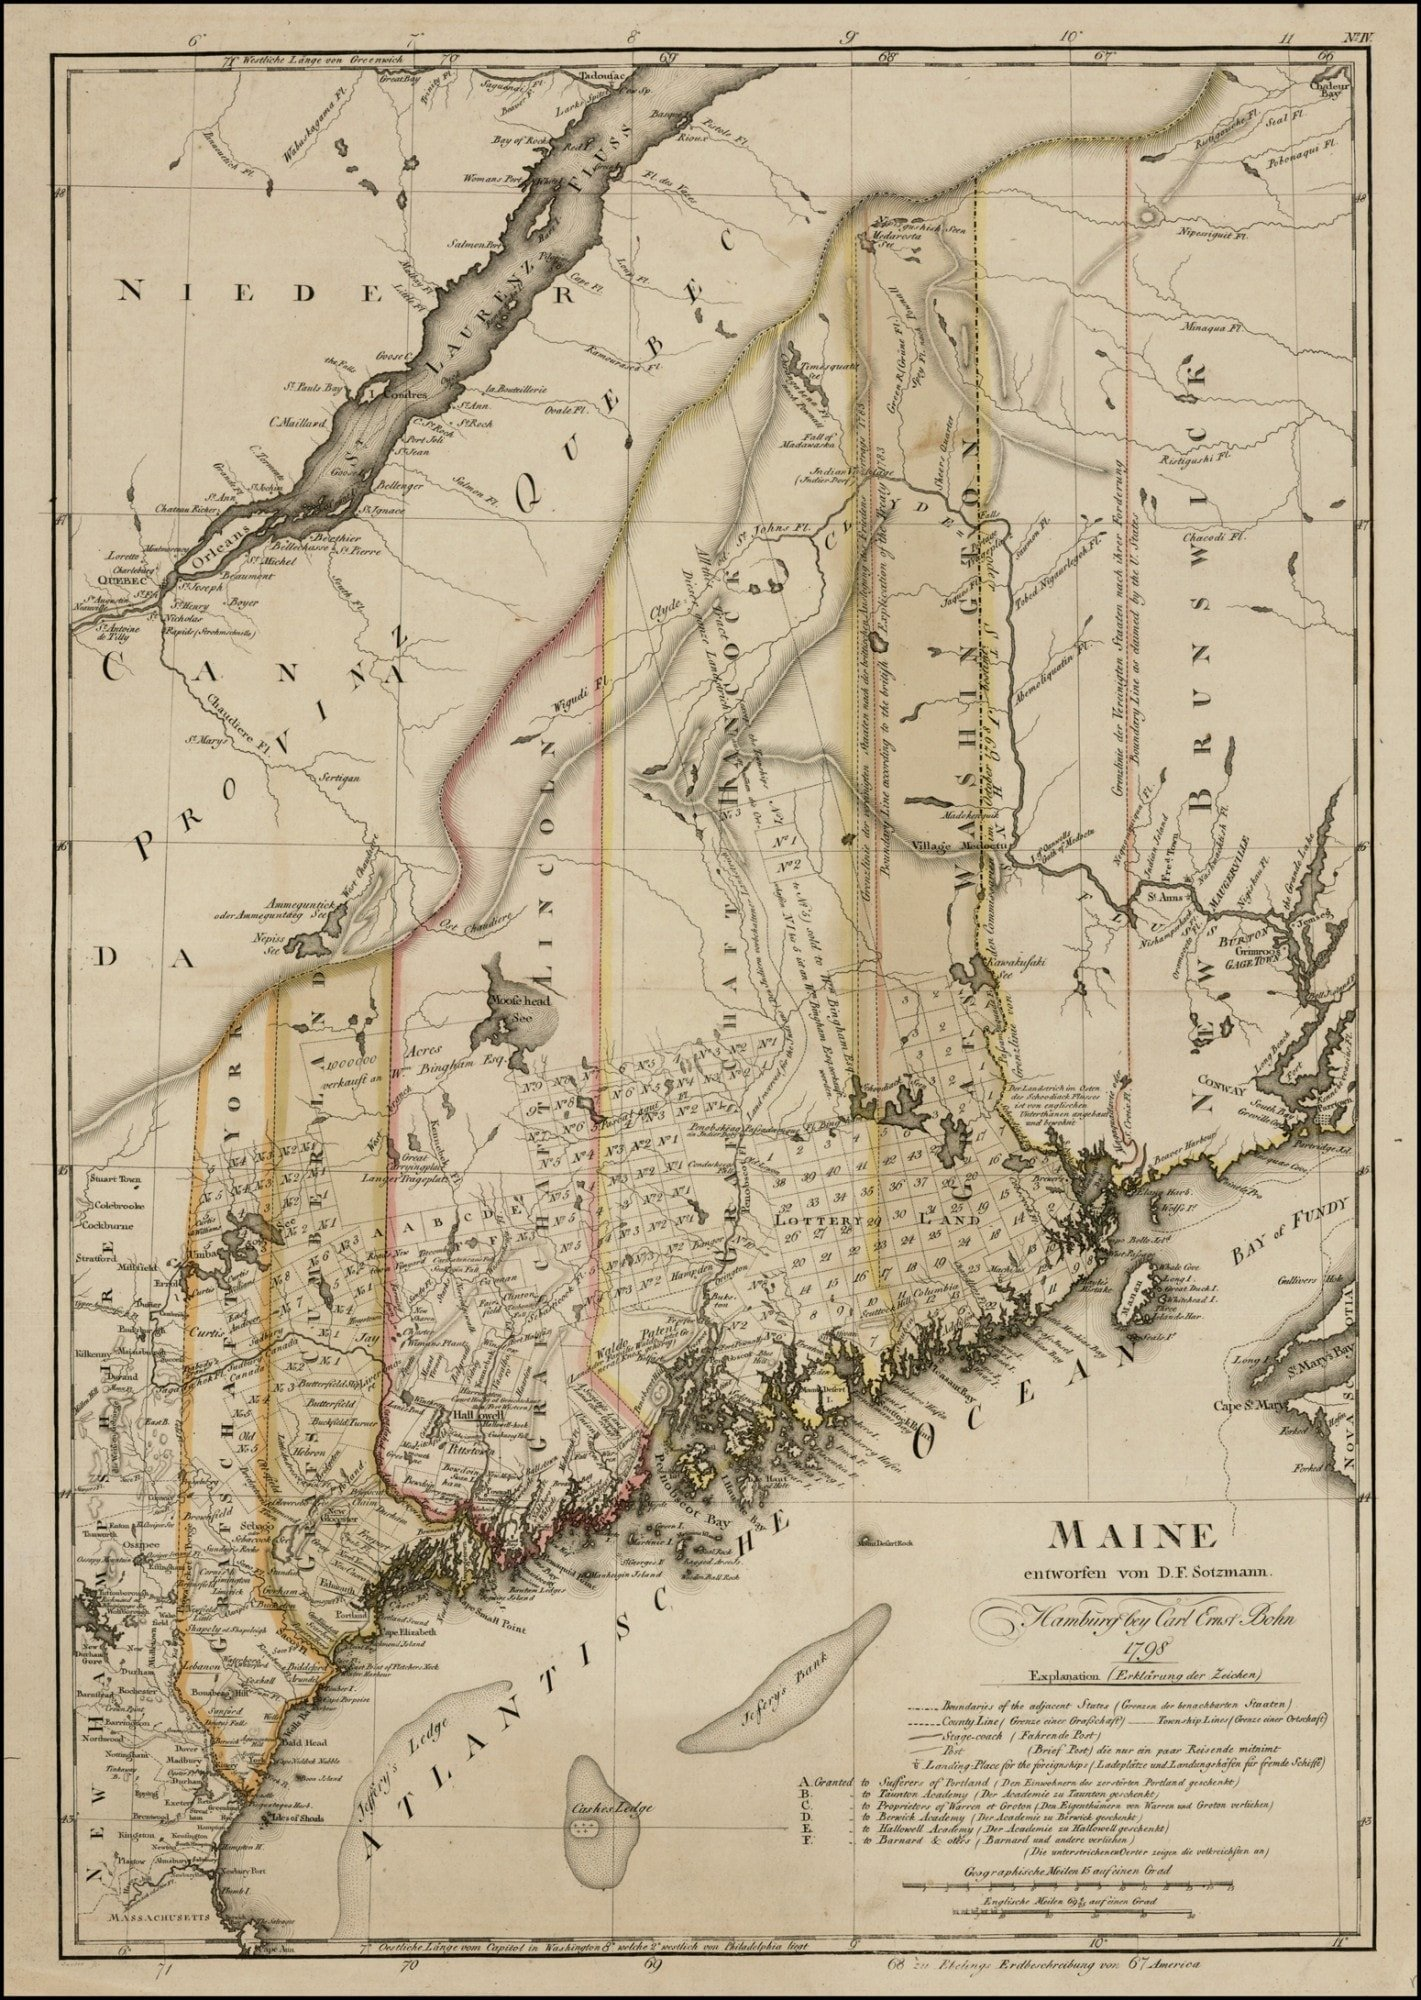 Undoubtedly One Of The Finest Early Maps Of Maine Thompson Rare - Antique map of maine